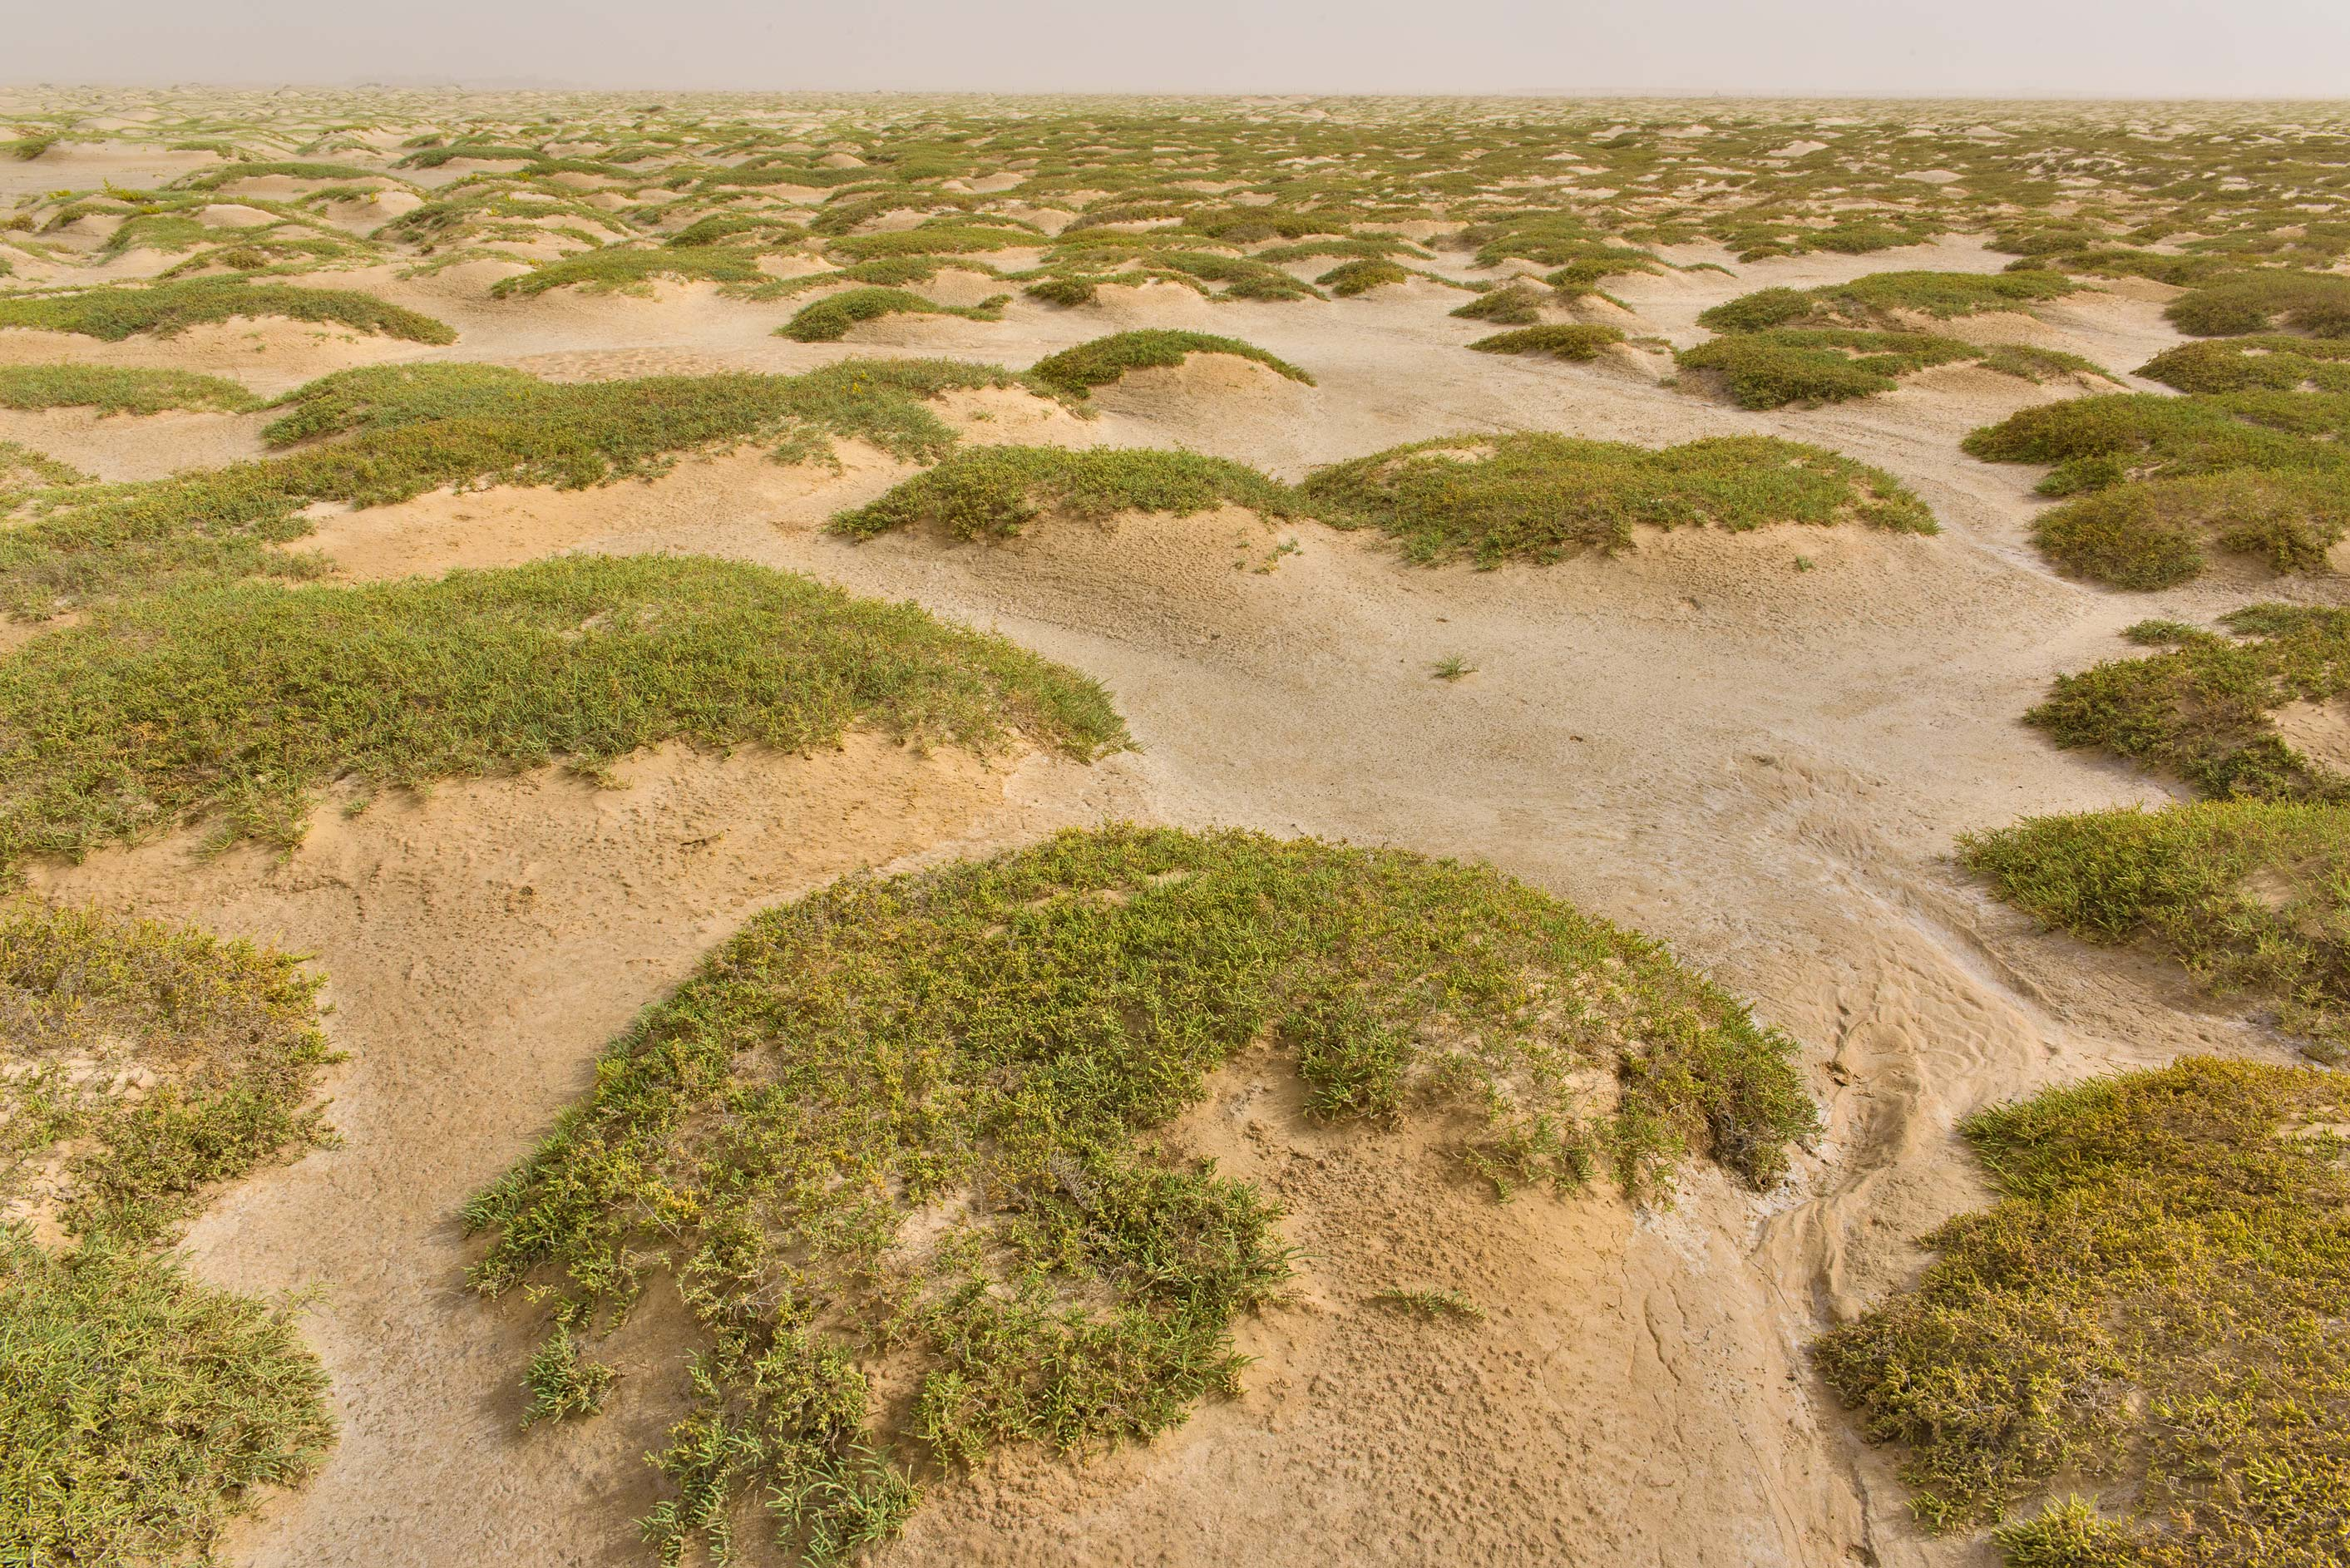 Green mounds of jointed glasswort (Halocnemum...Al Qawar north from Al Thakhira. Qatar